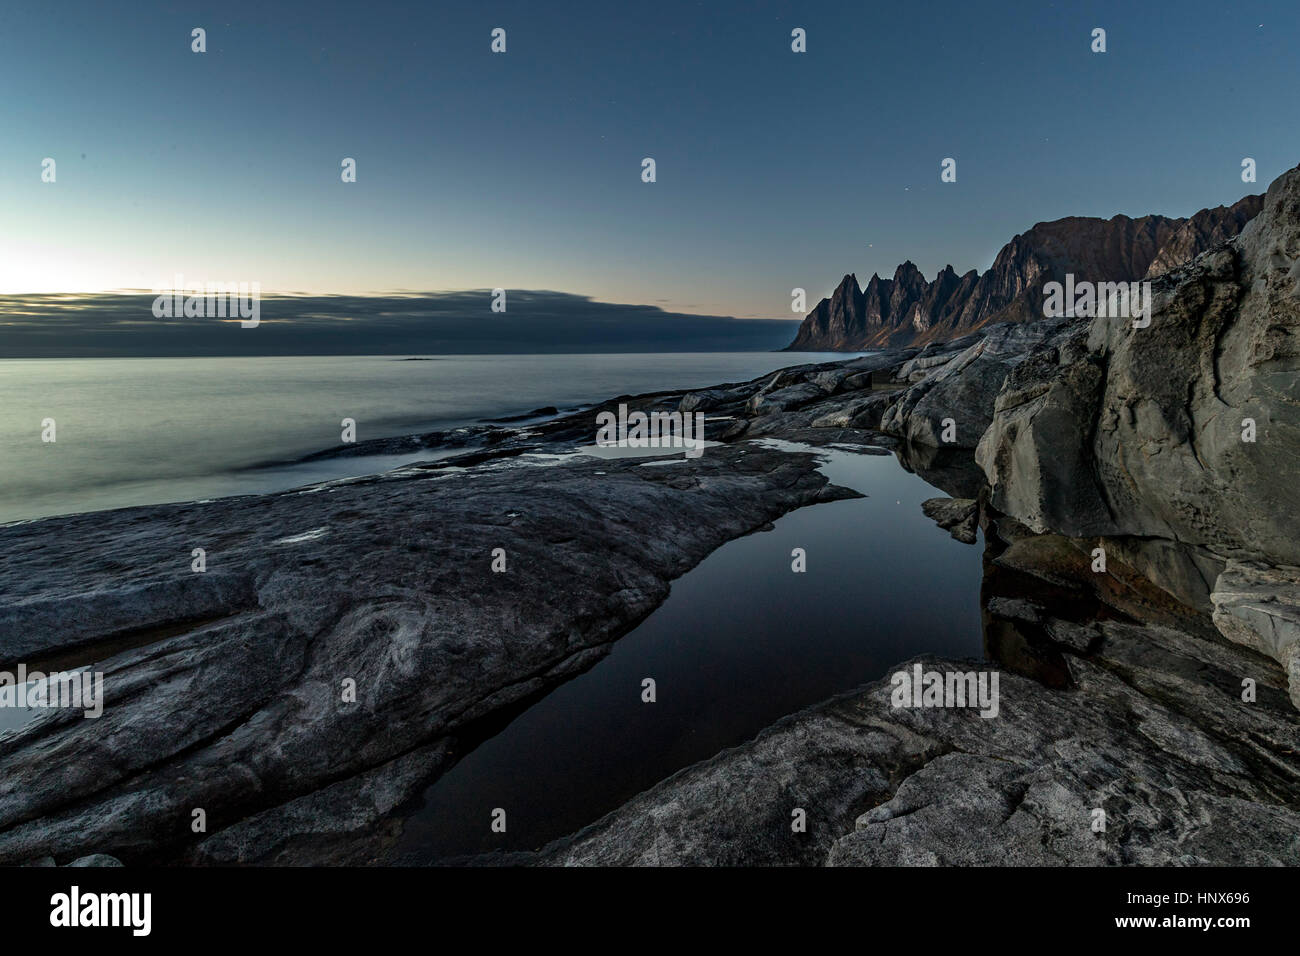 View over the sea towards Okshornan from Tunganeset on Senja Island in autumn, Arctic Norway - Stock Image